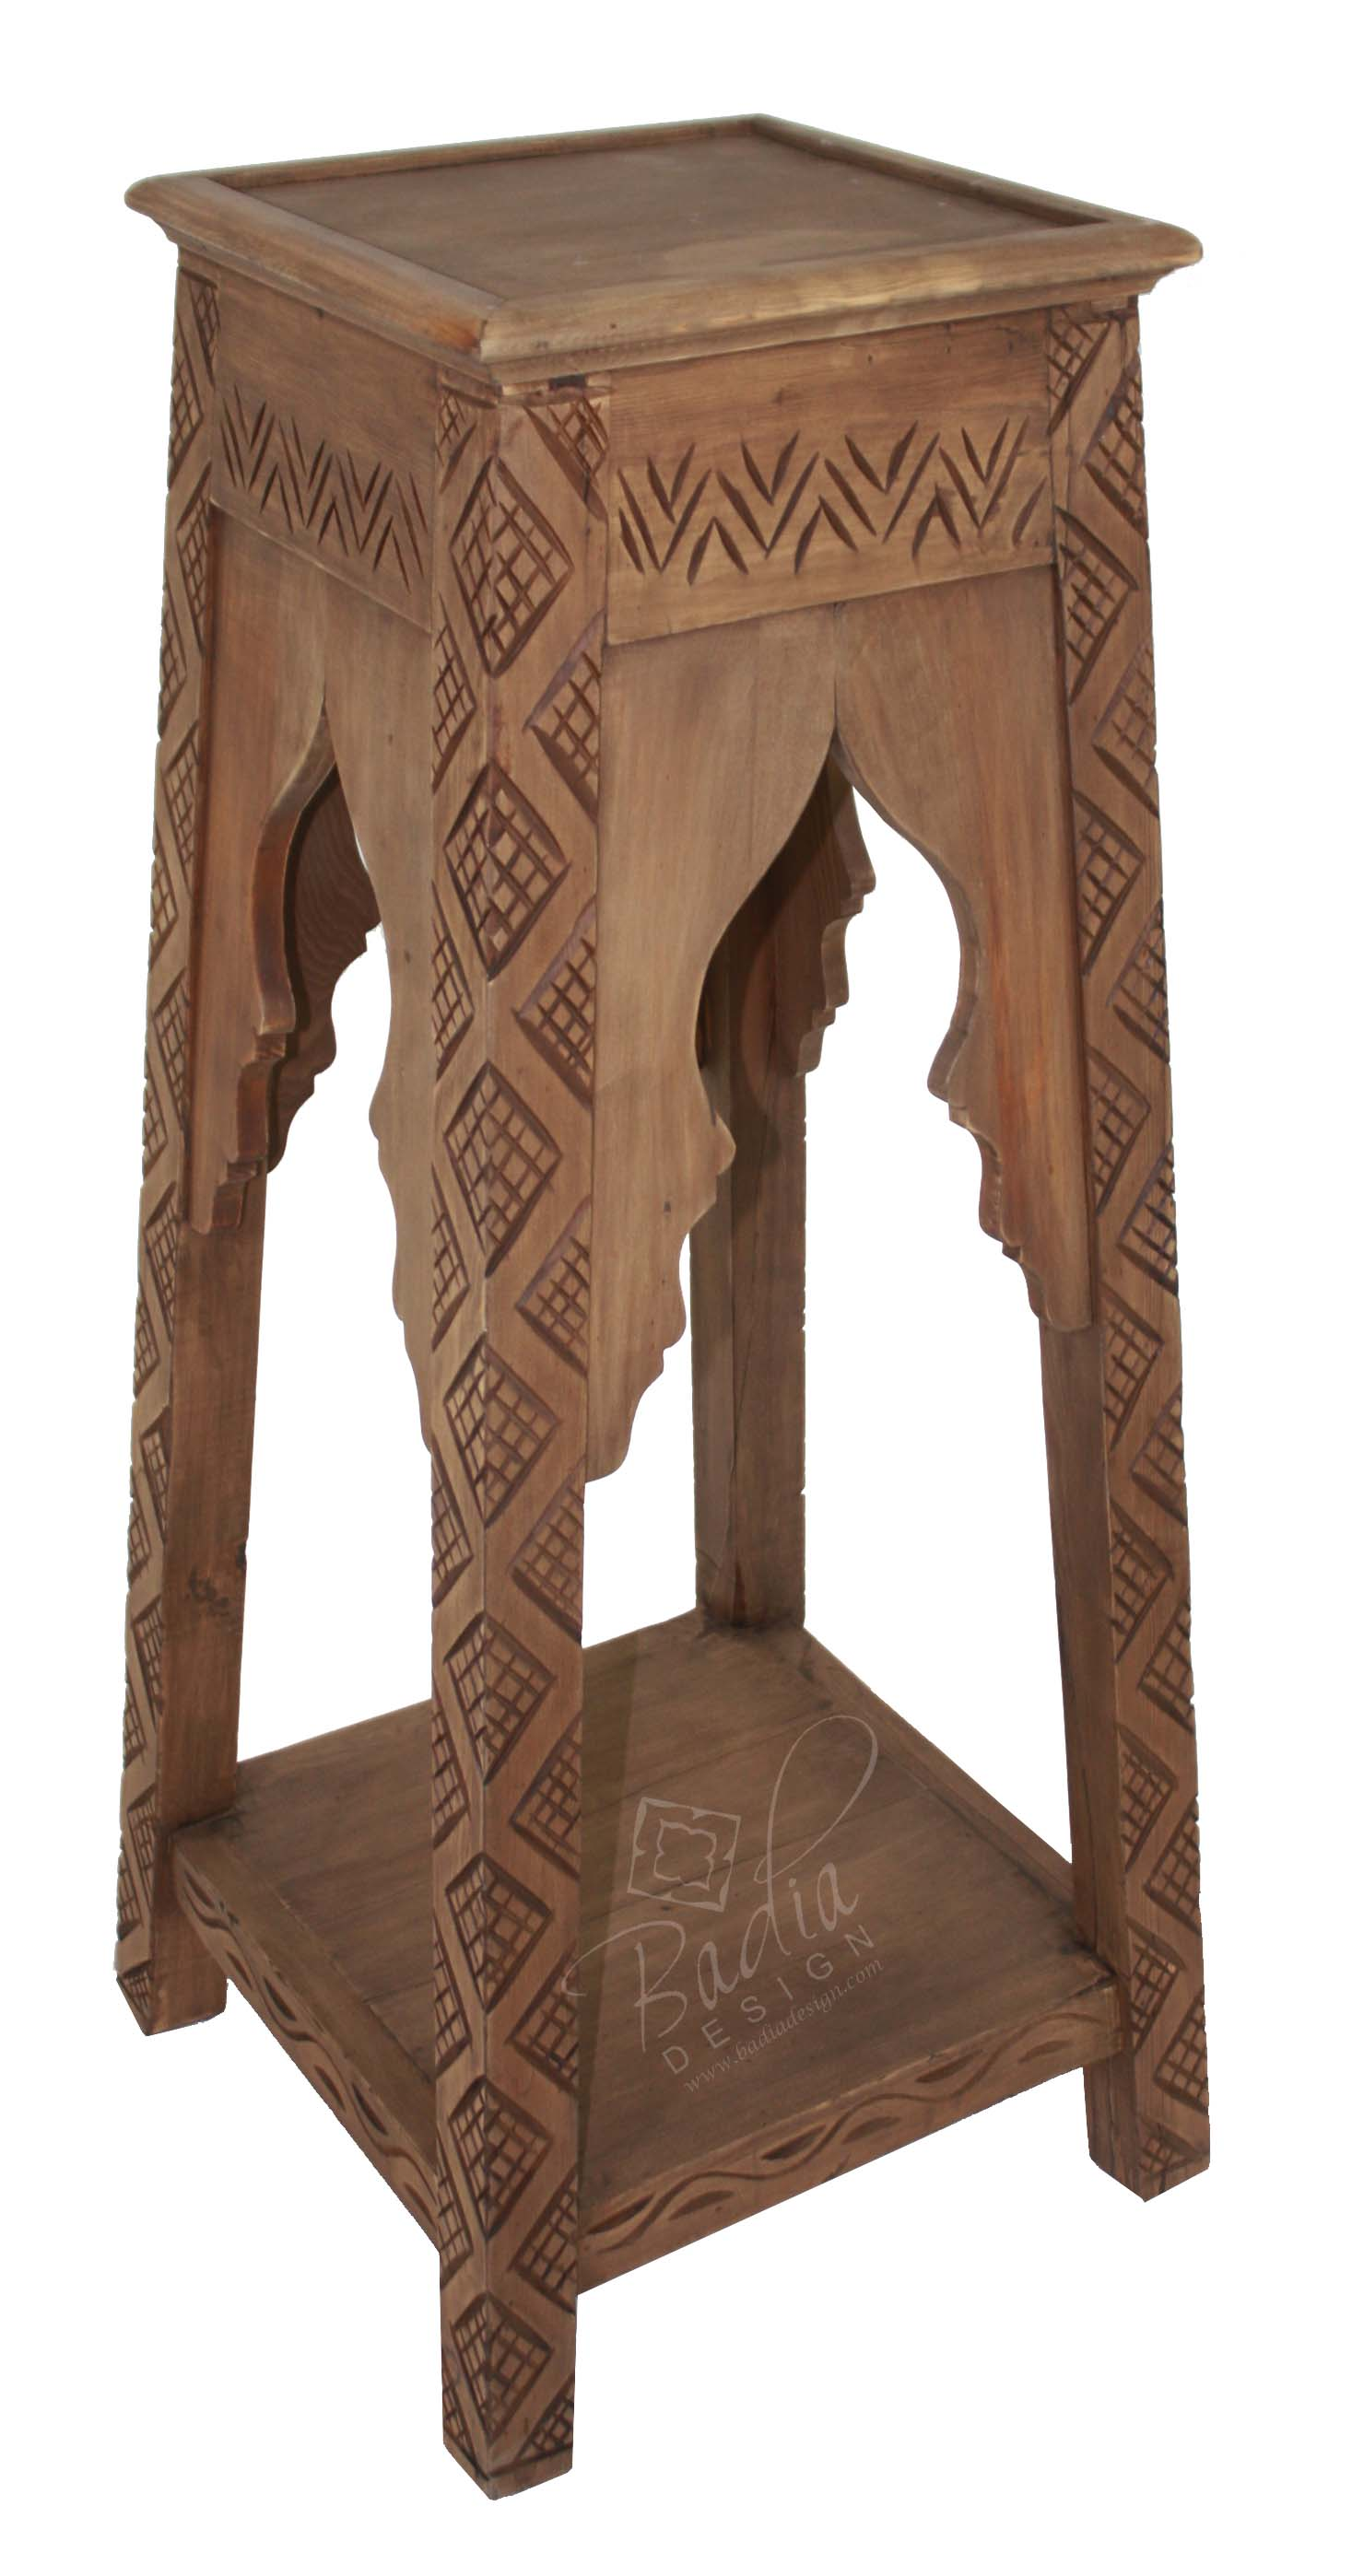 tall-moroccan-hand-carved-wooden-stand-cw-st054-2.jpg